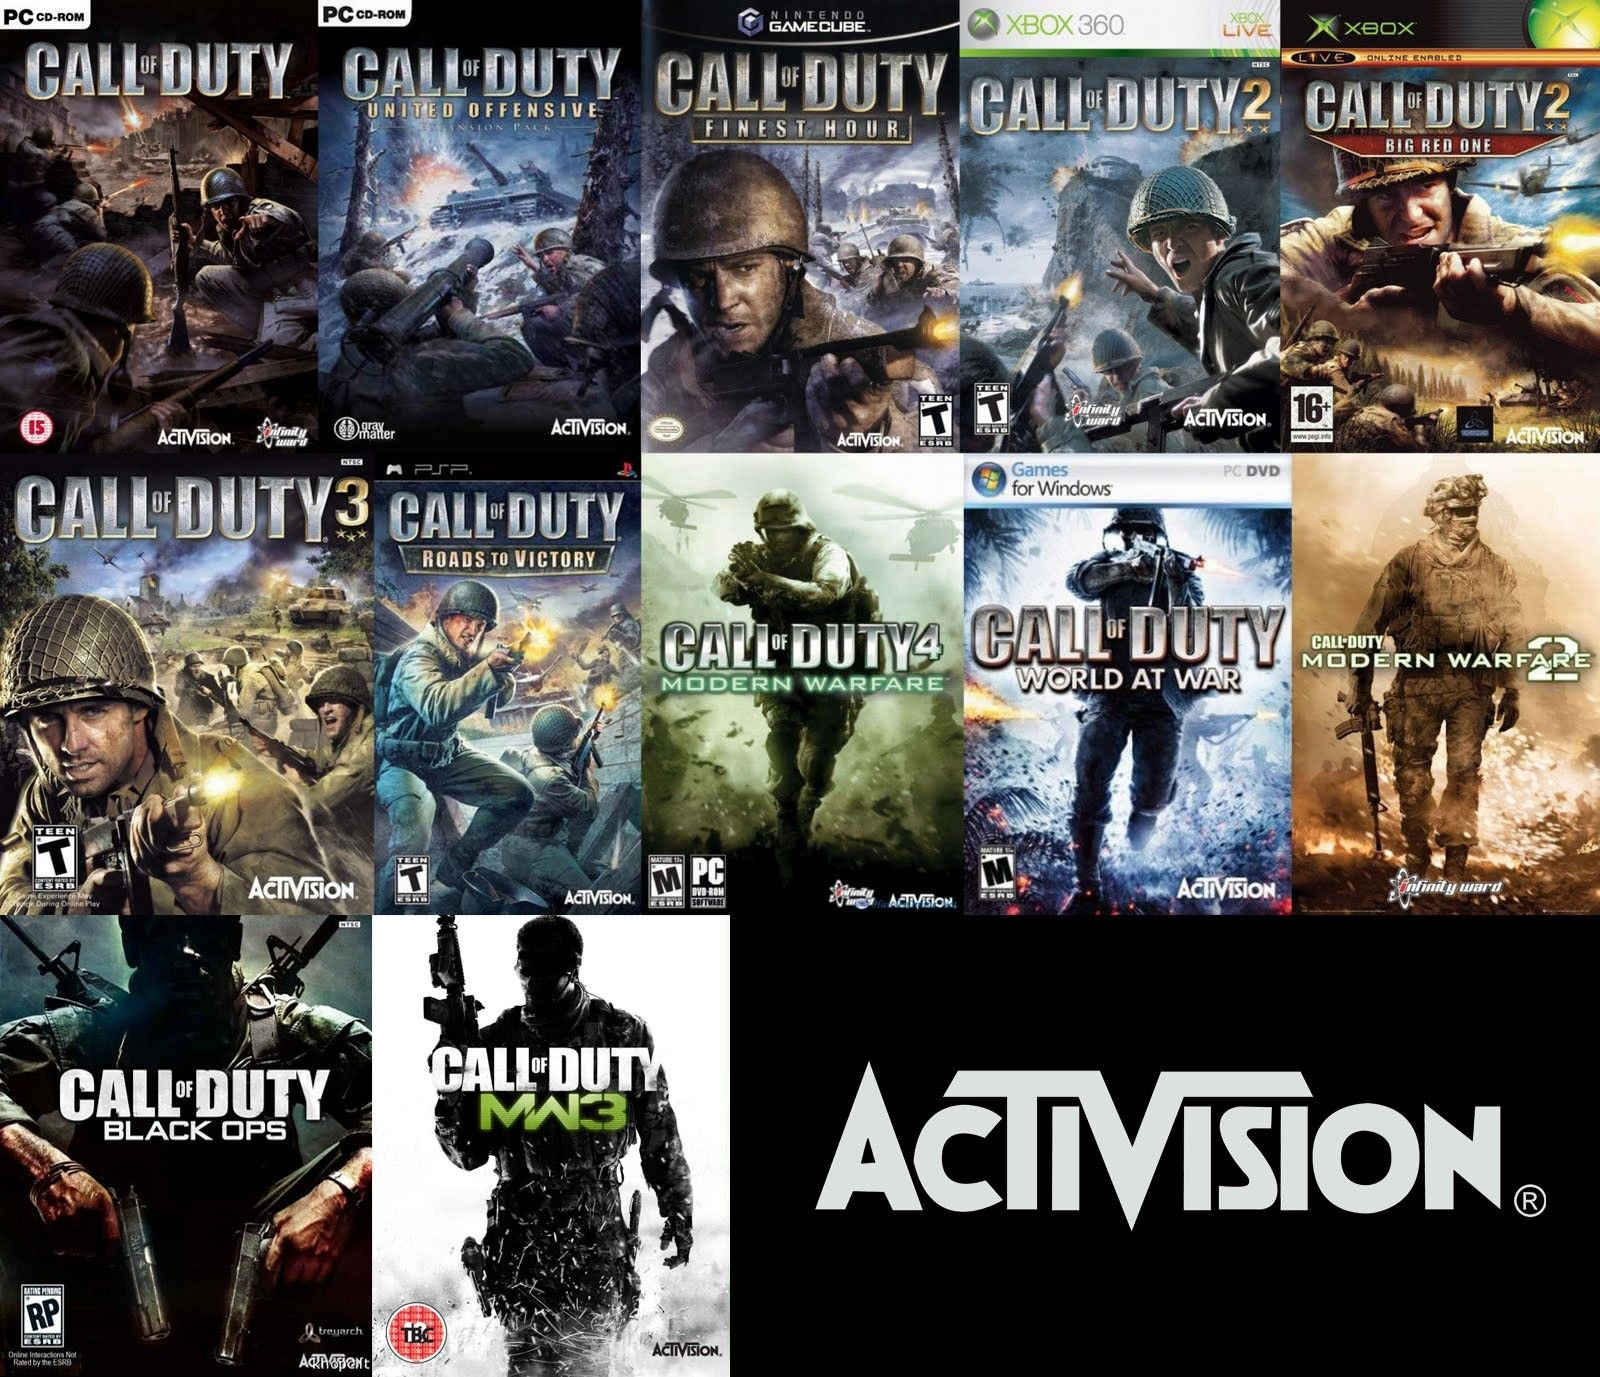 call_of_duty_games Call of duty black, Funny games